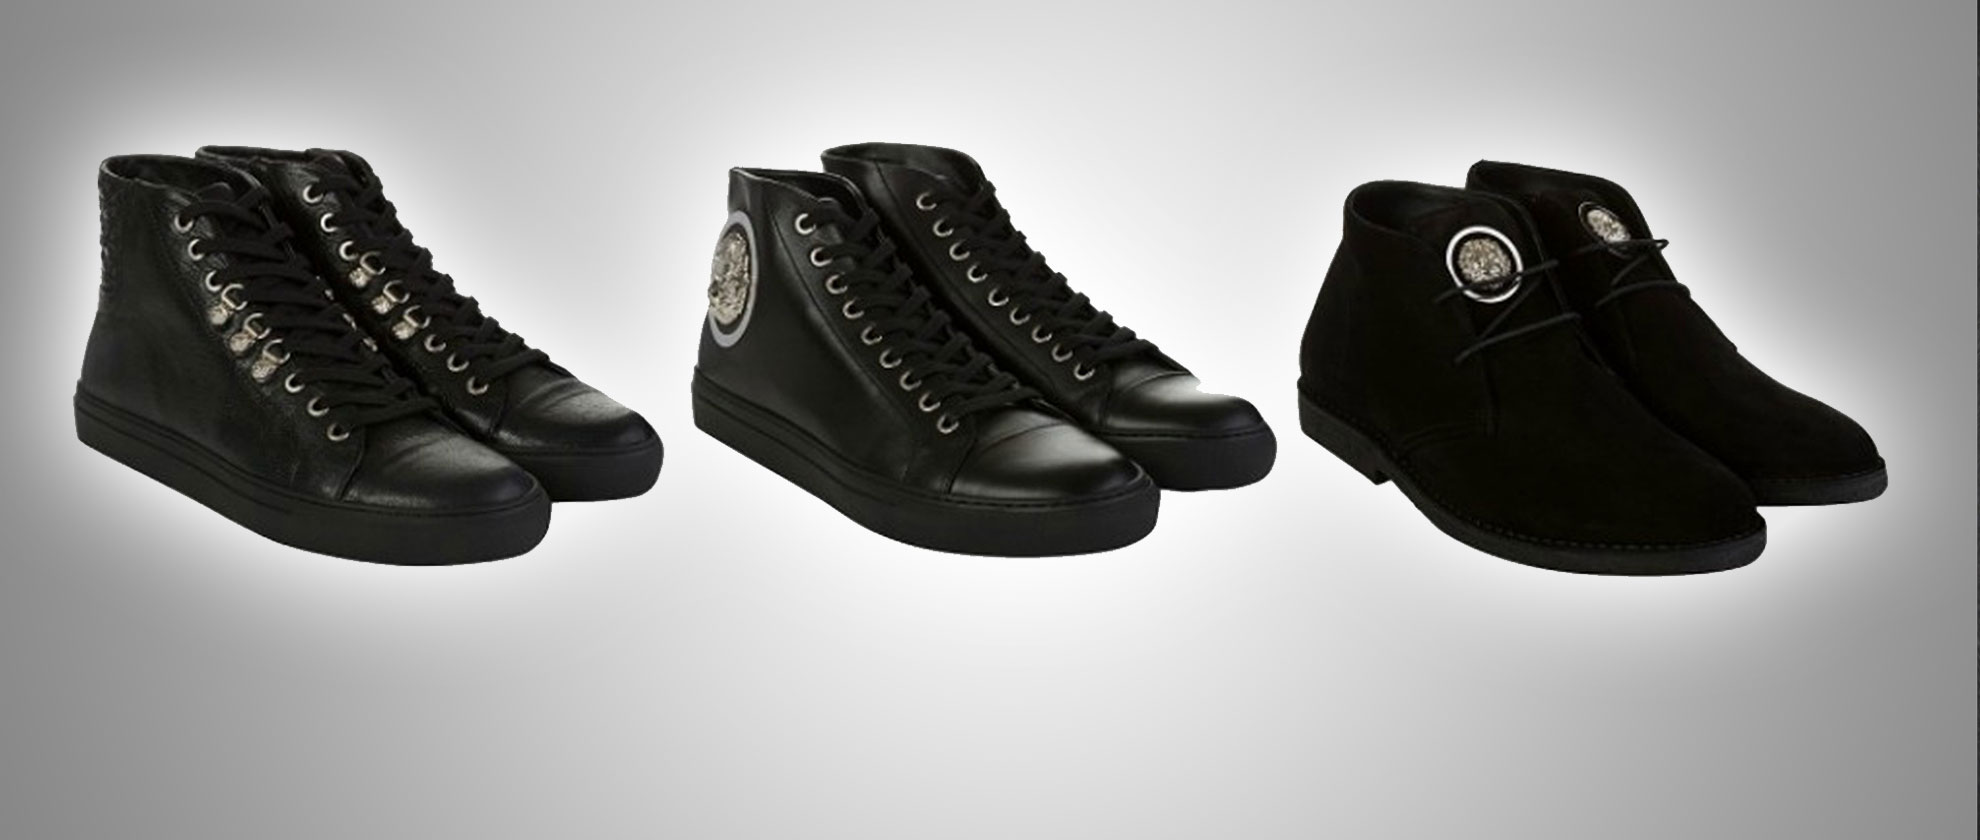 Staff Picks: Versus Versace LFW Capsule Collection Footwear